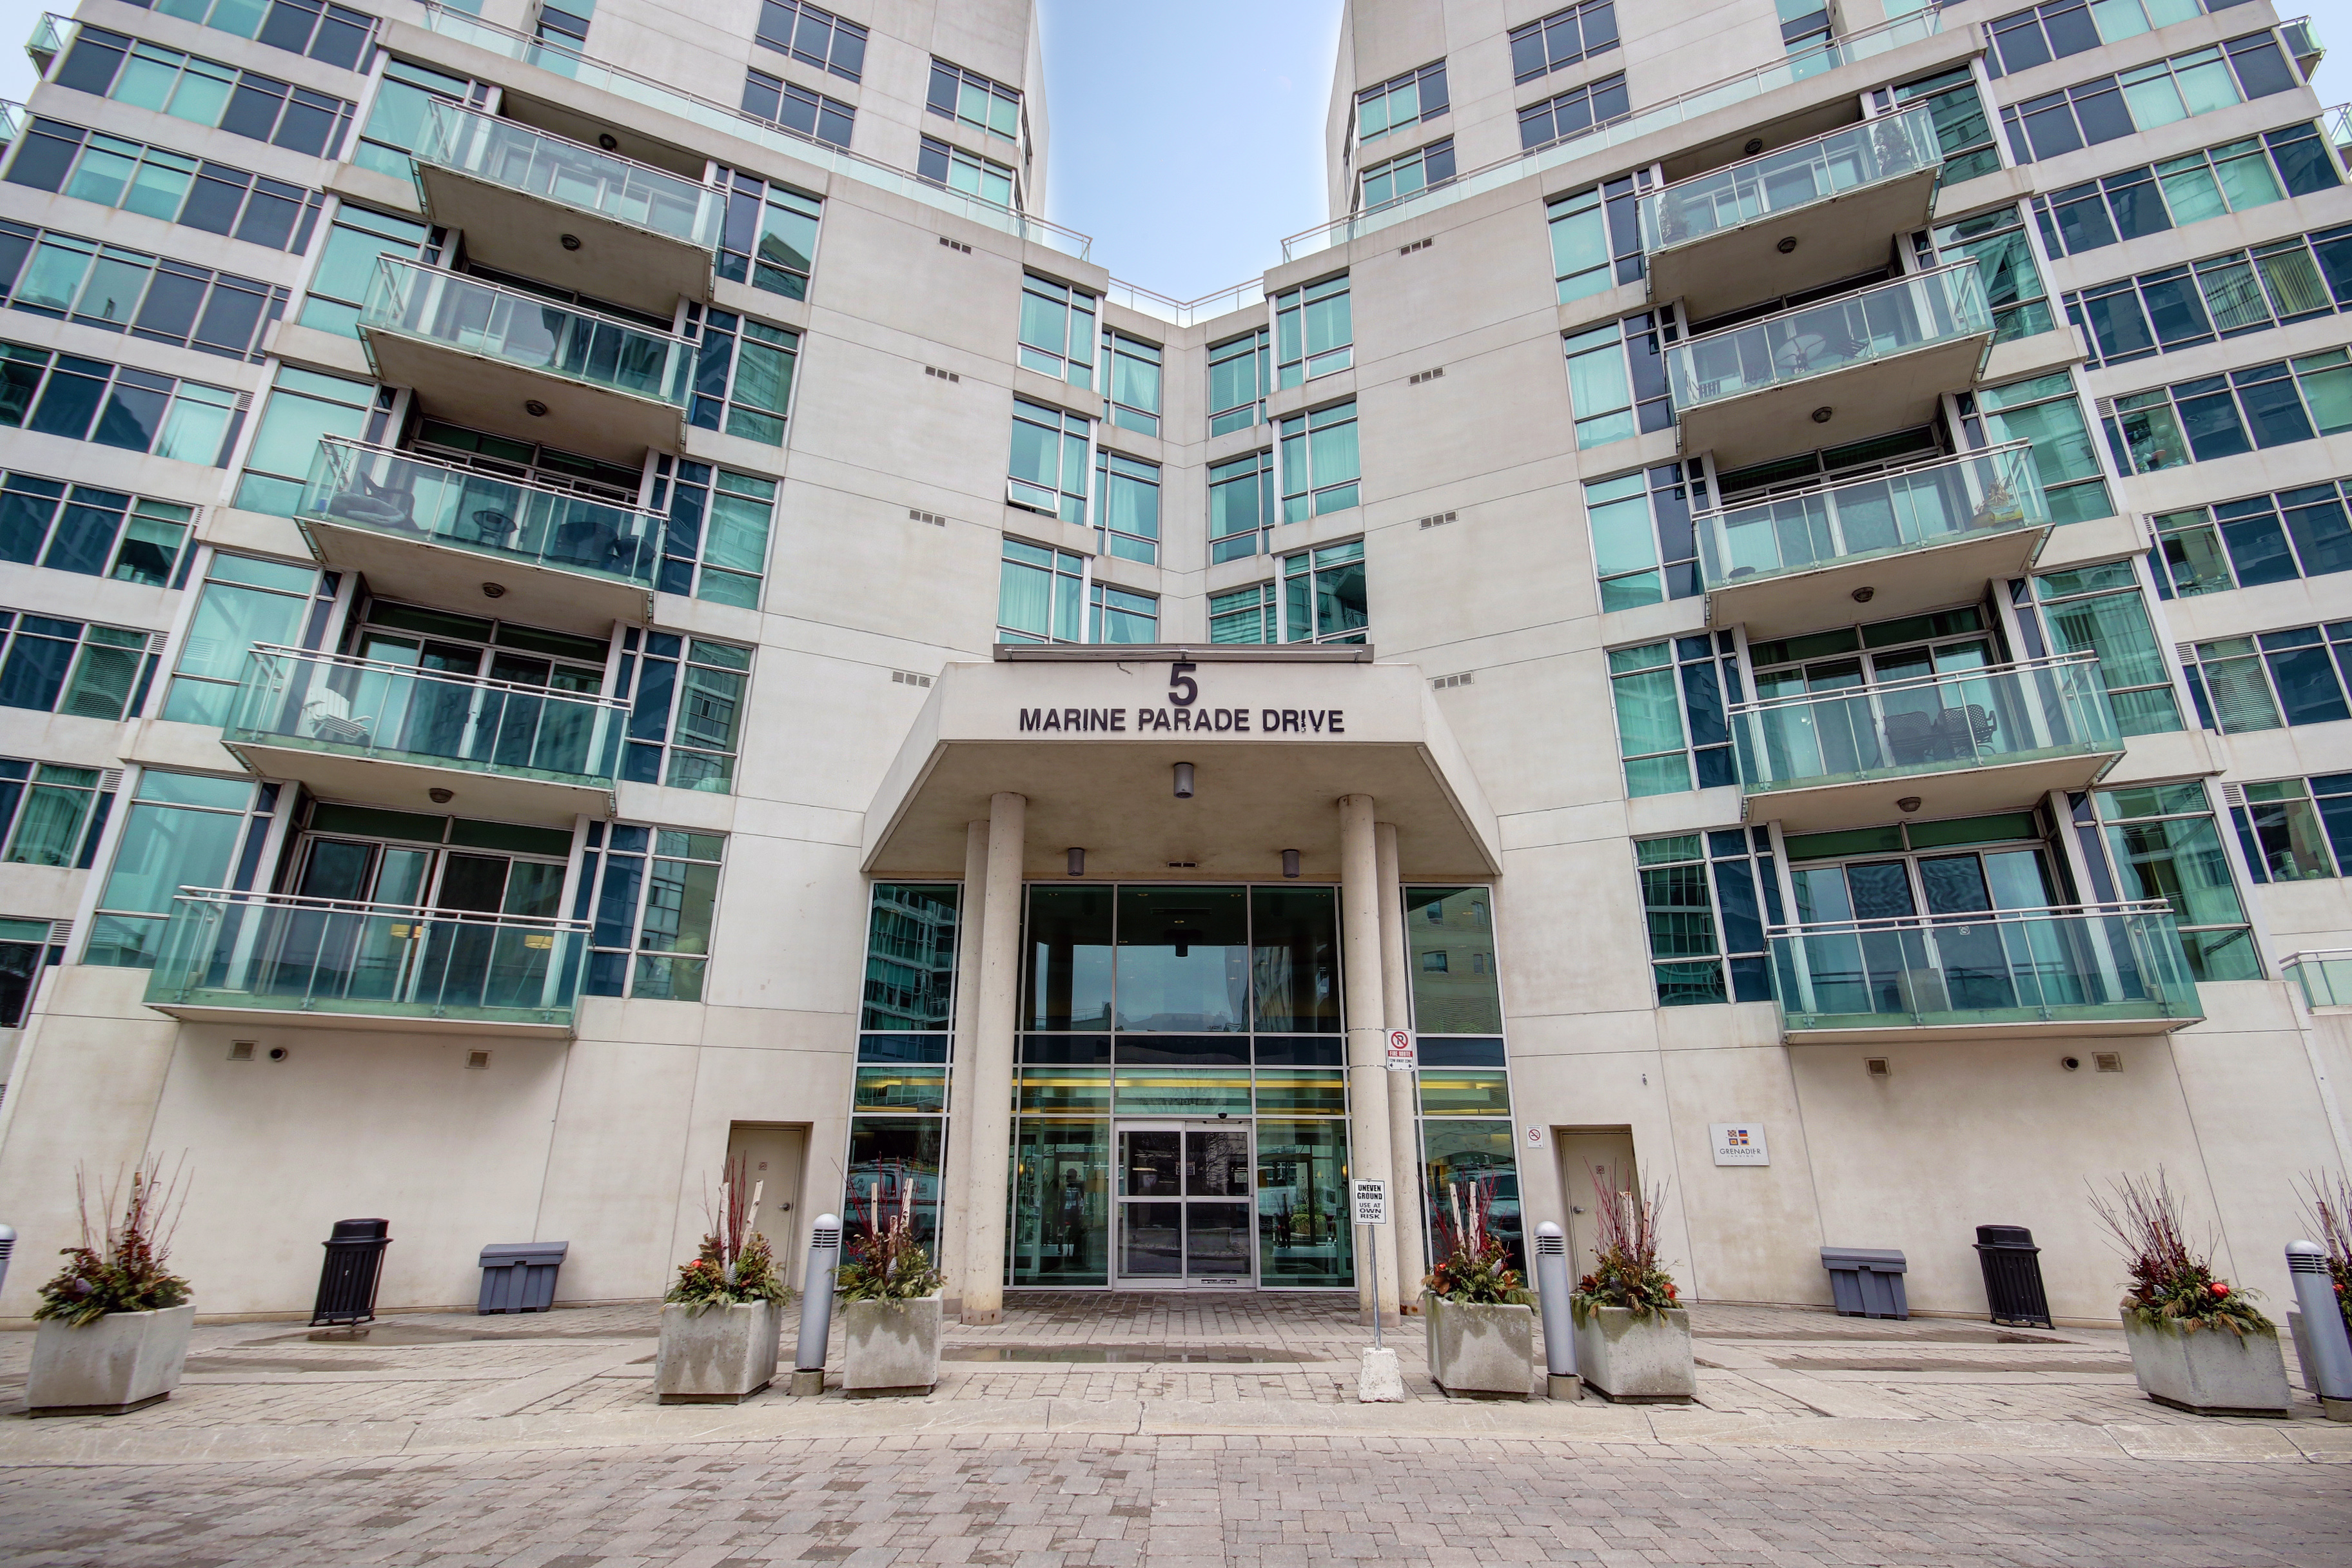 Waterfront Condo For Sale in Mimico 5 Marine Parade Drive #321